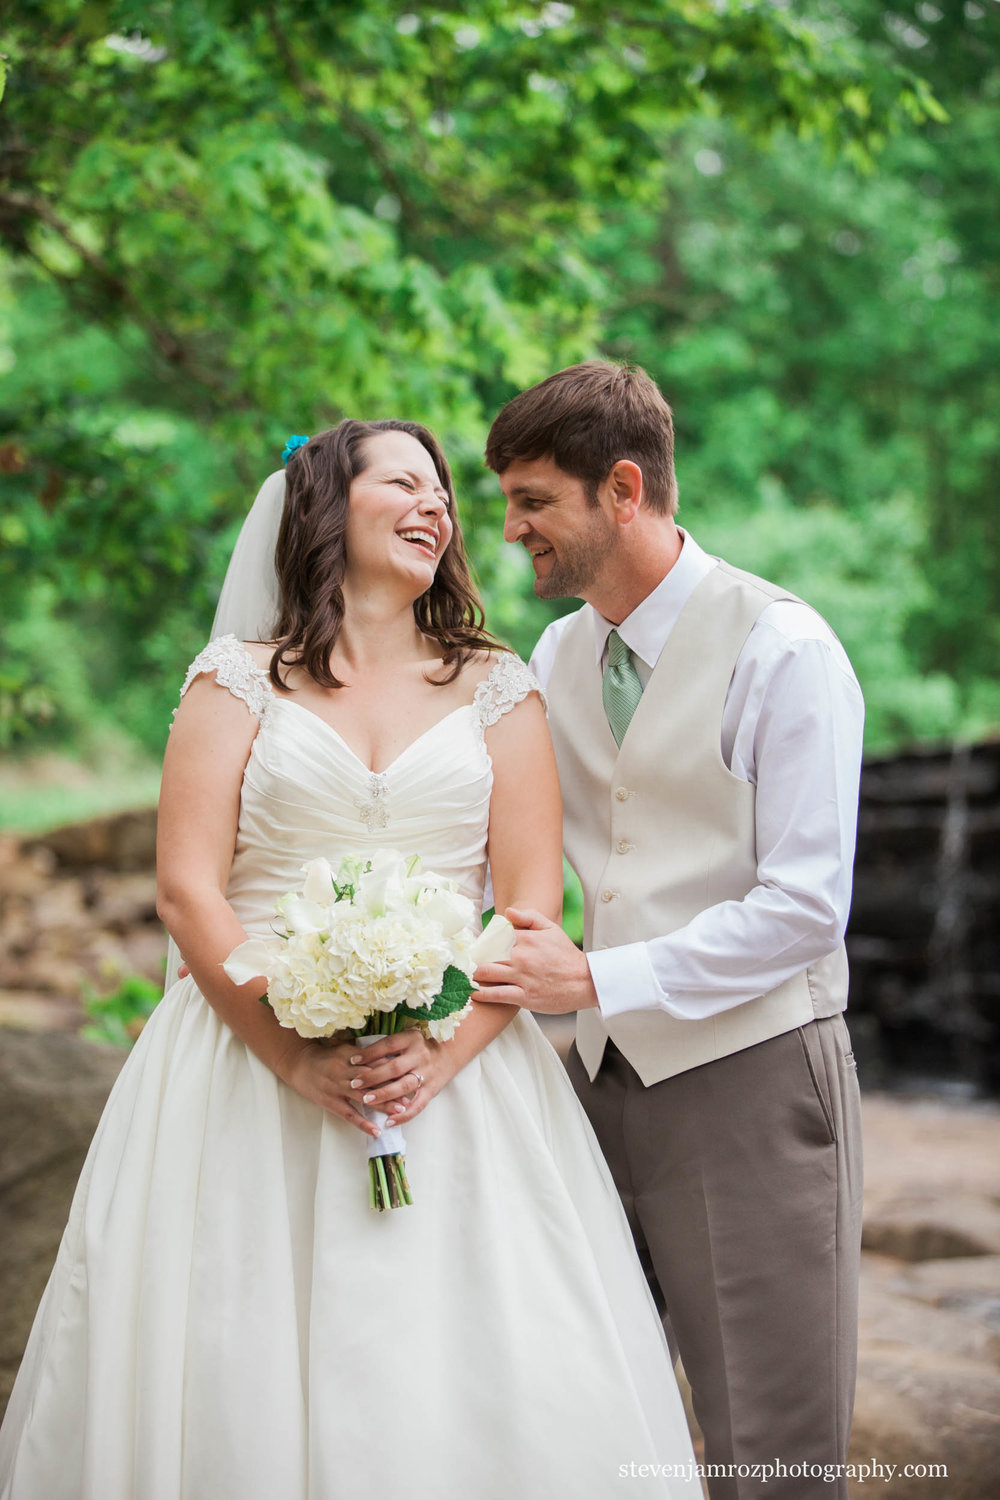 bride-groom-yates-mill-pond-session-photography-steven-jamroz-0731.jpg